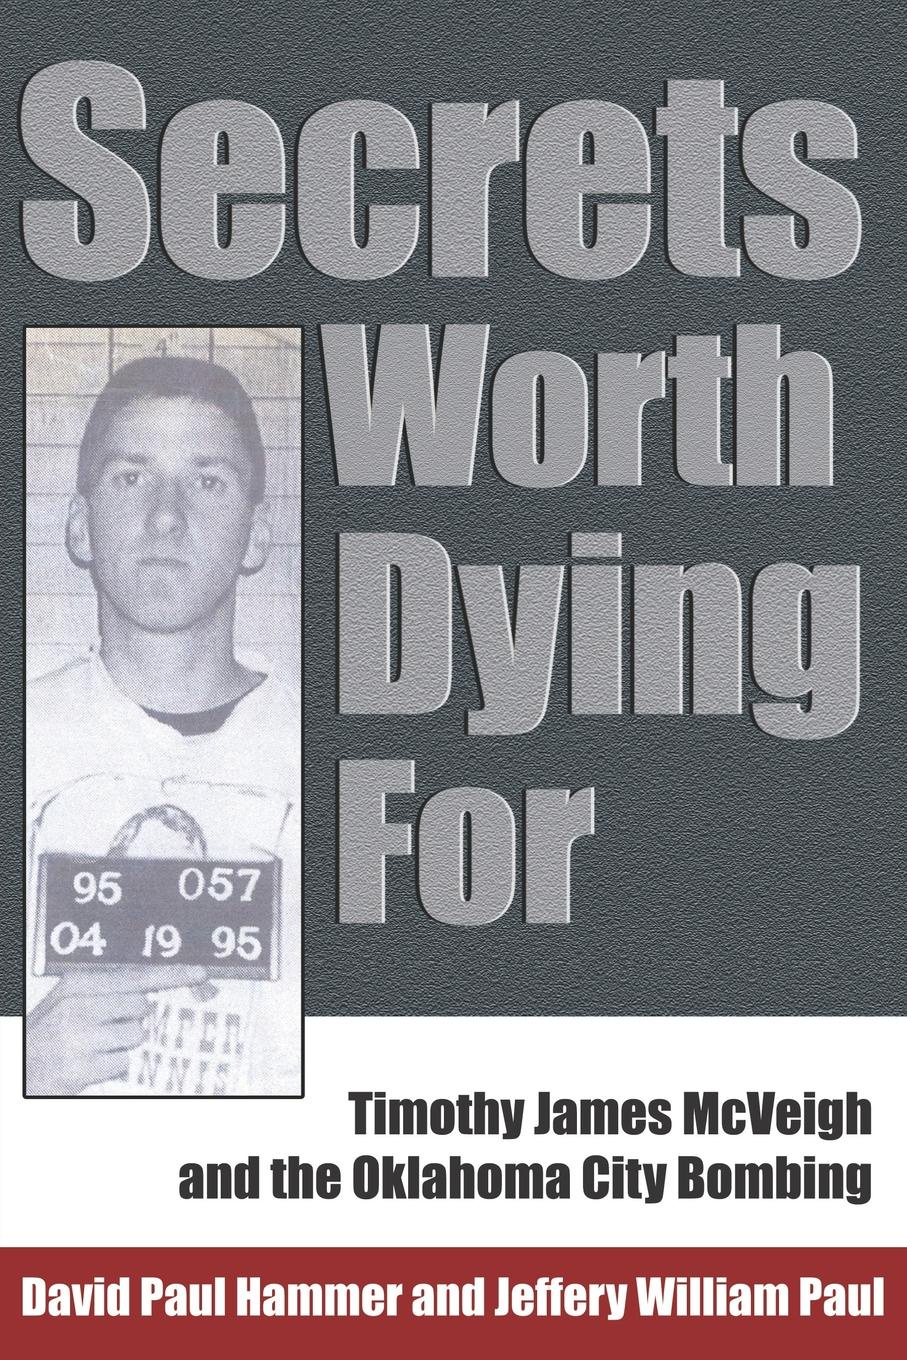 David Paul Hammer, Jeffery William Secrets Worth Dying for. Timothy James McVeigh and the Oklahoma City Bombing